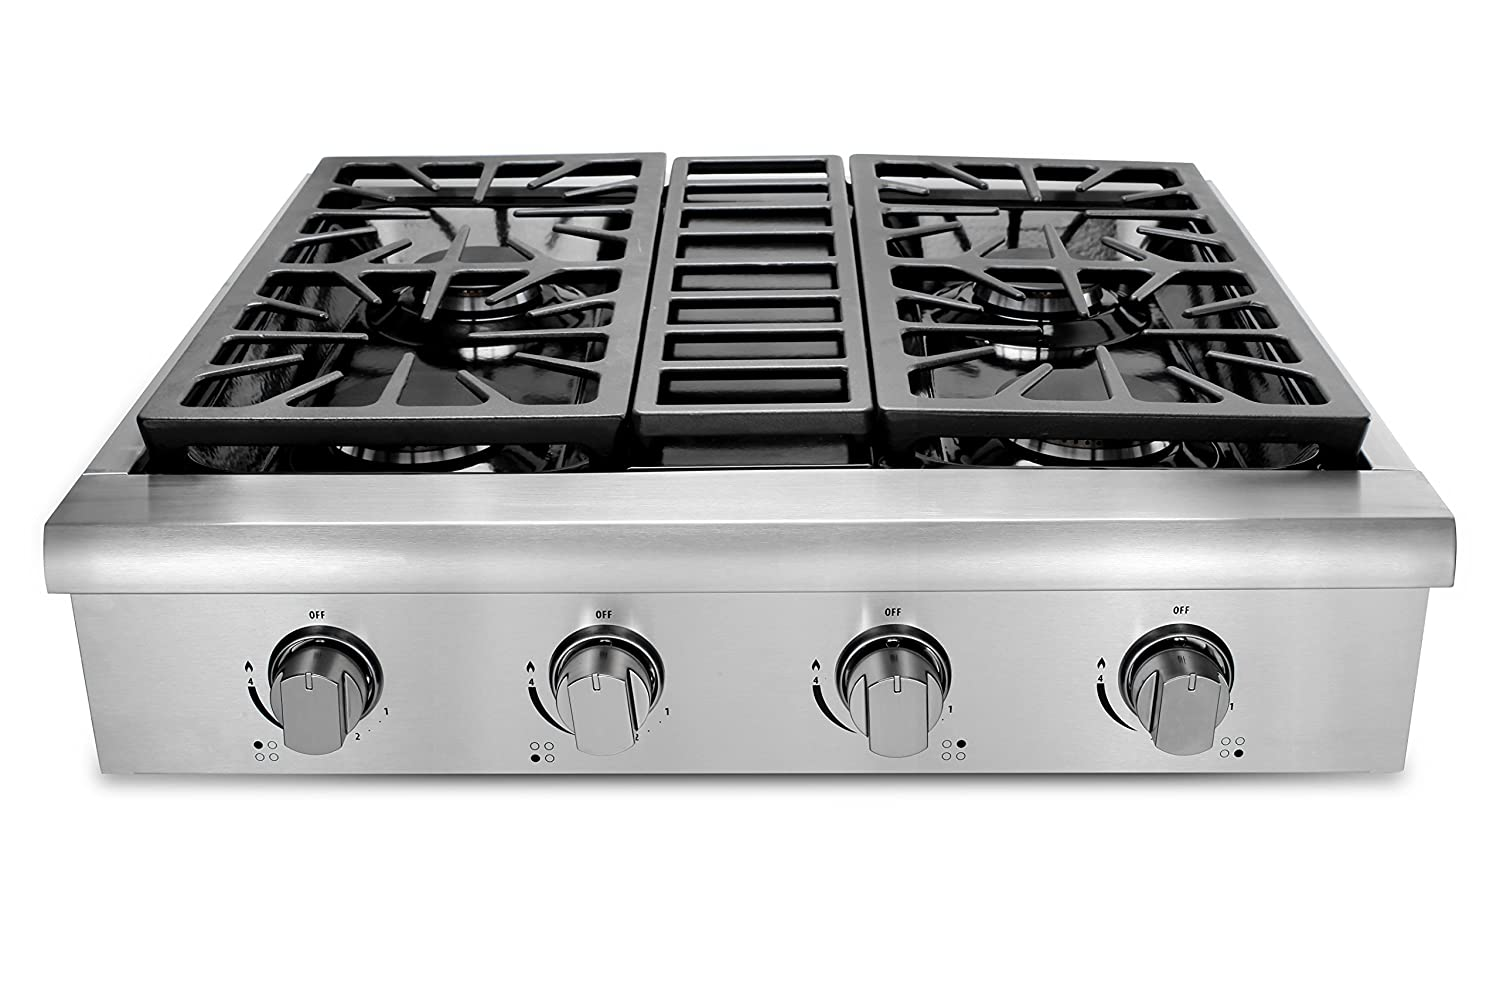 amazon thorkitchen hrt3003u 30 pro style gas rangetop with 4 sealed burners stainless steel appliances